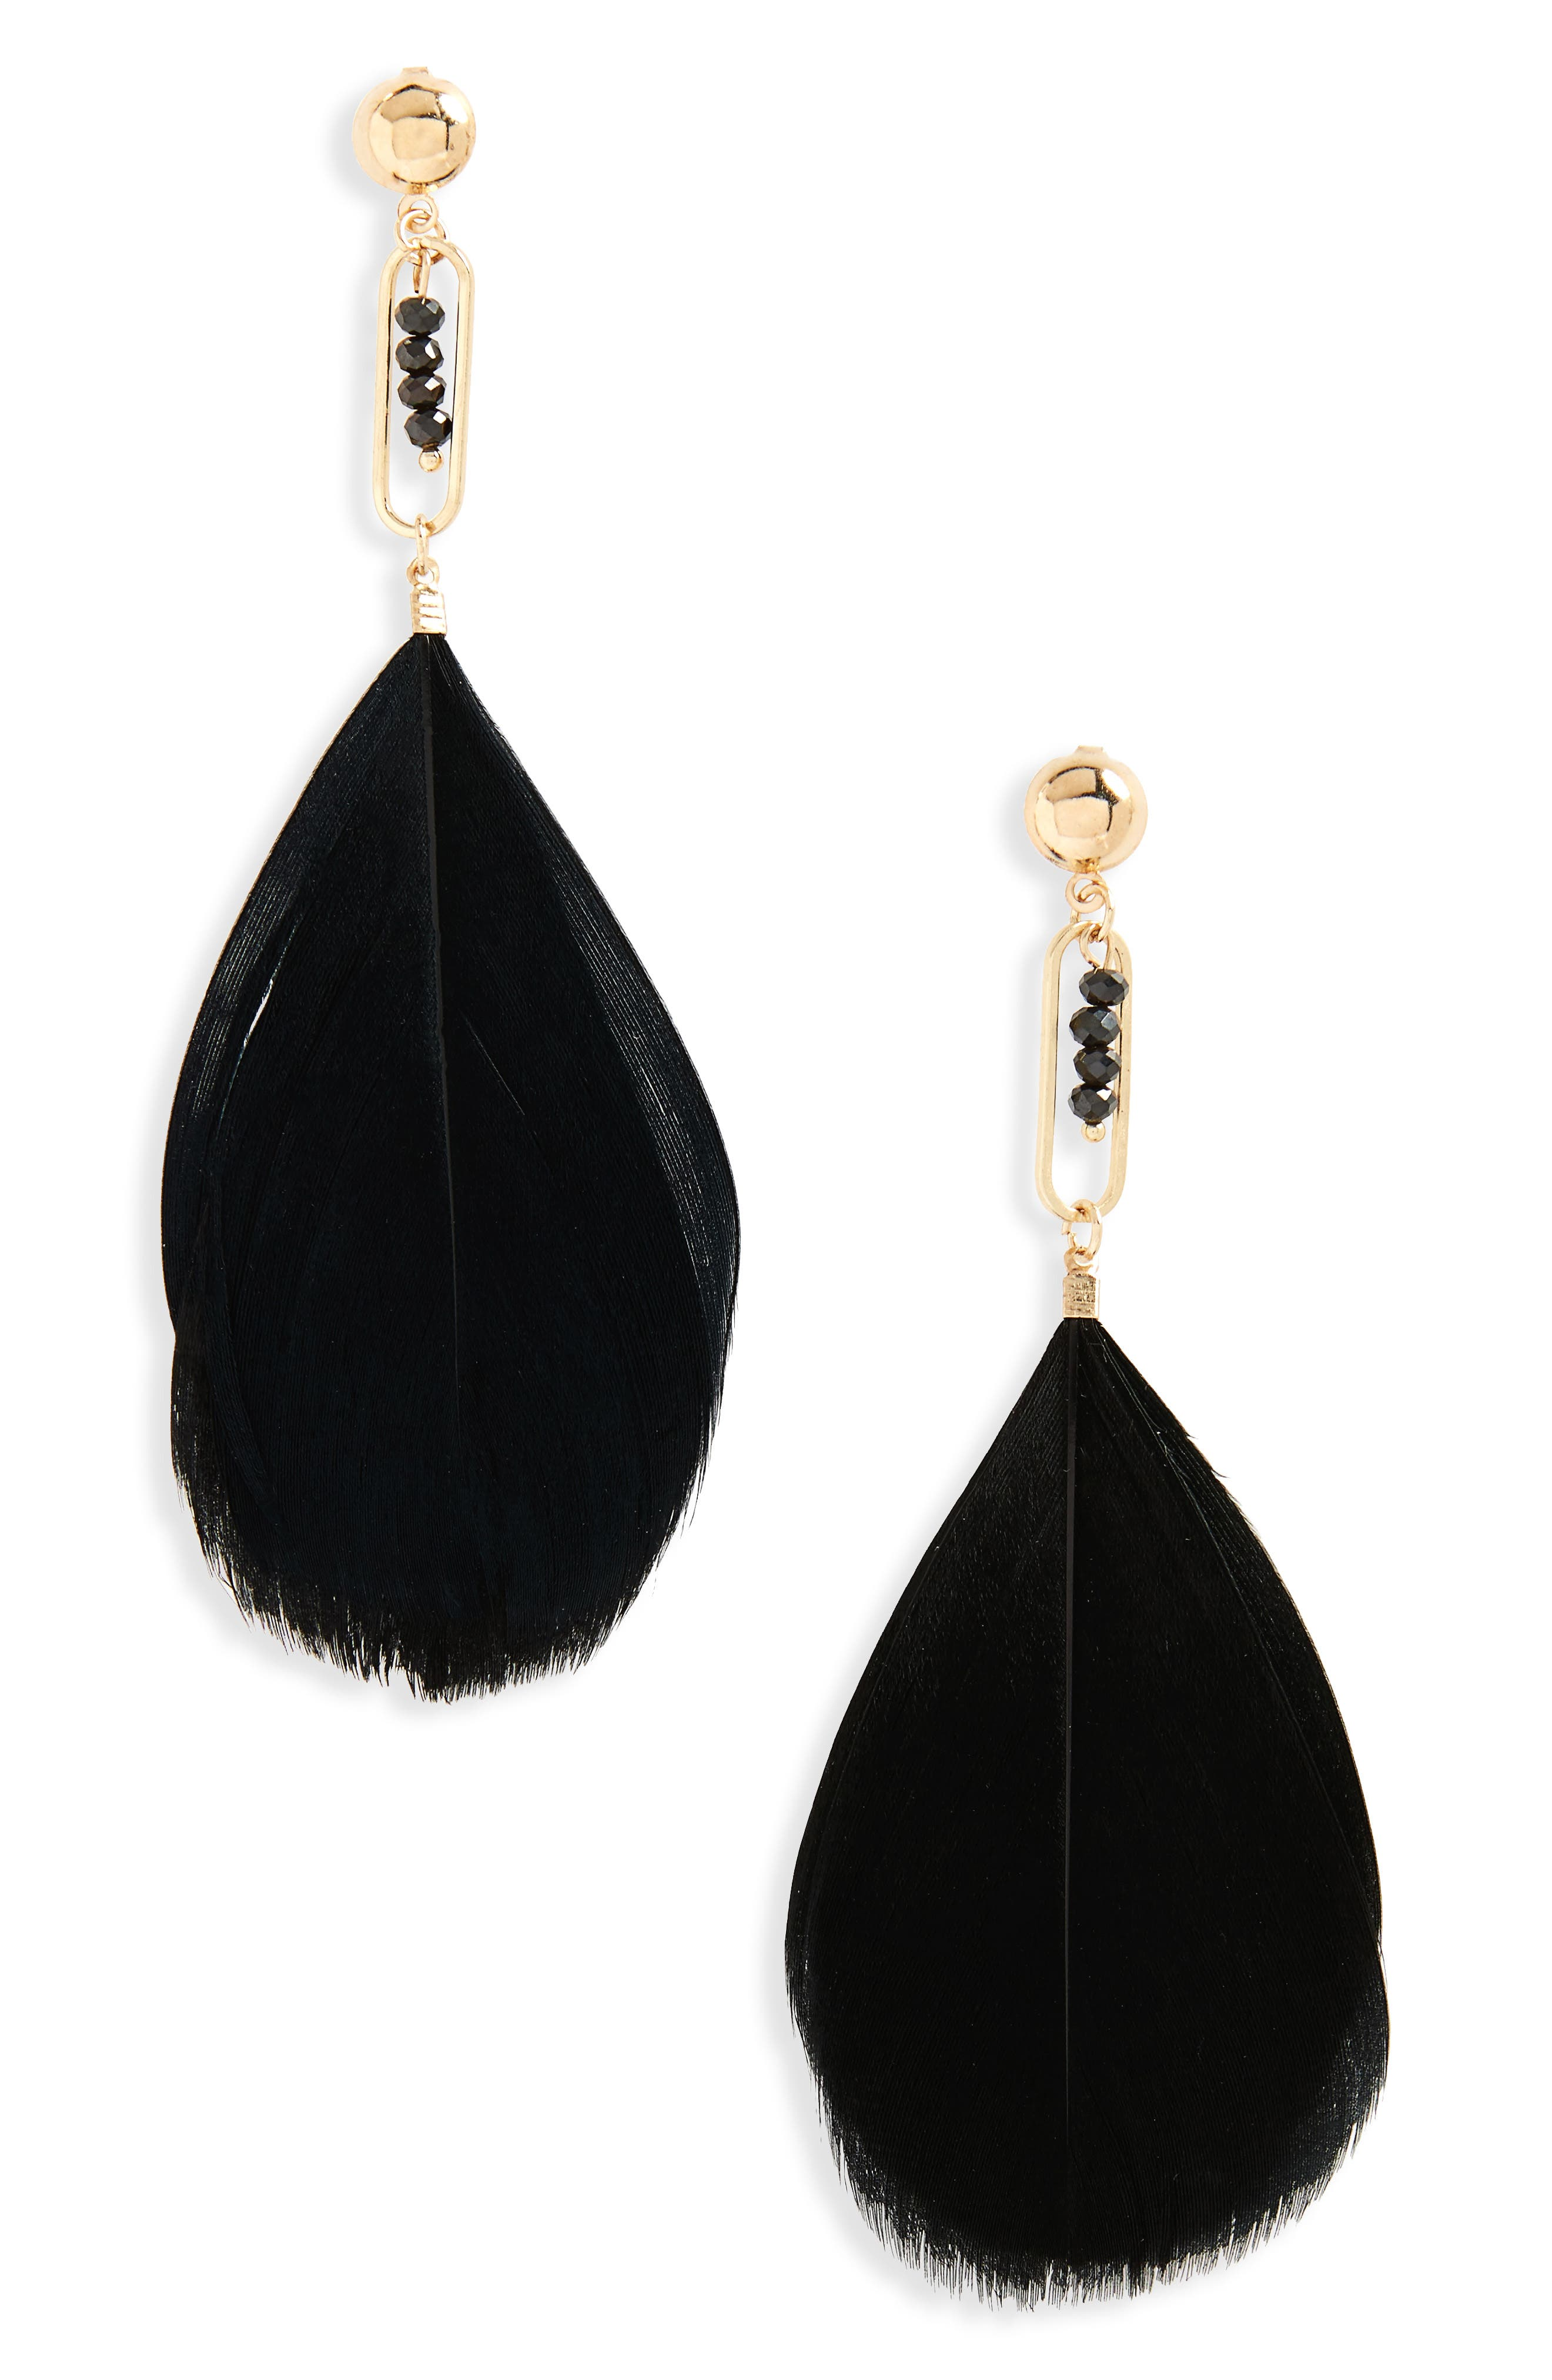 Bead & Feather Drop Earrings,                         Main,                         color, Black/ Gold